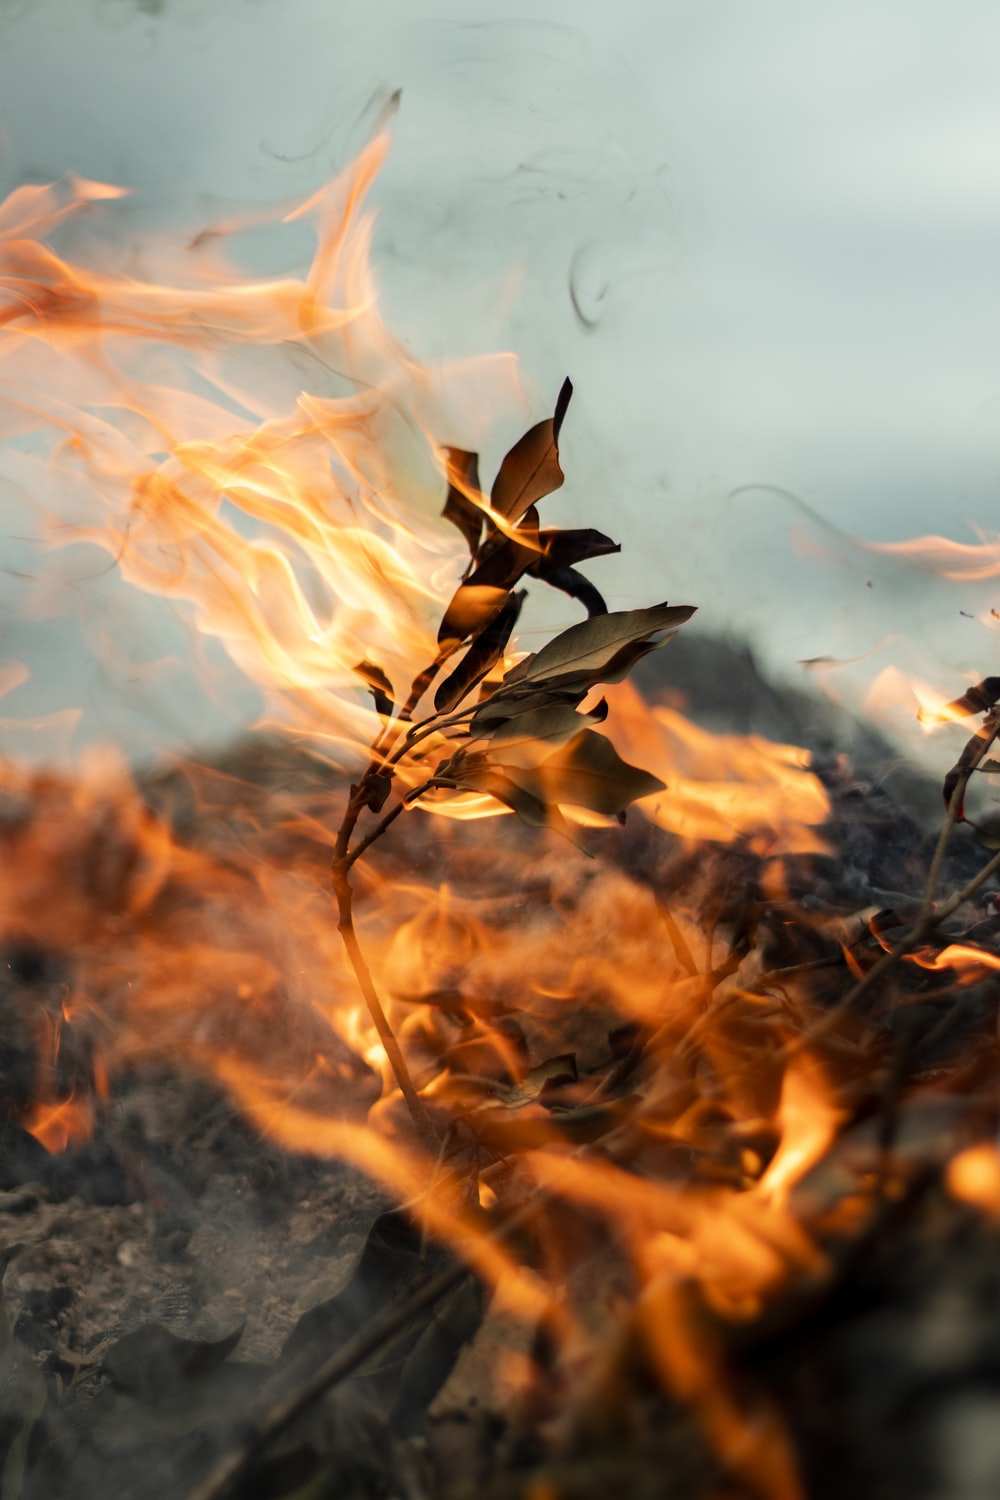 plant burned with fire